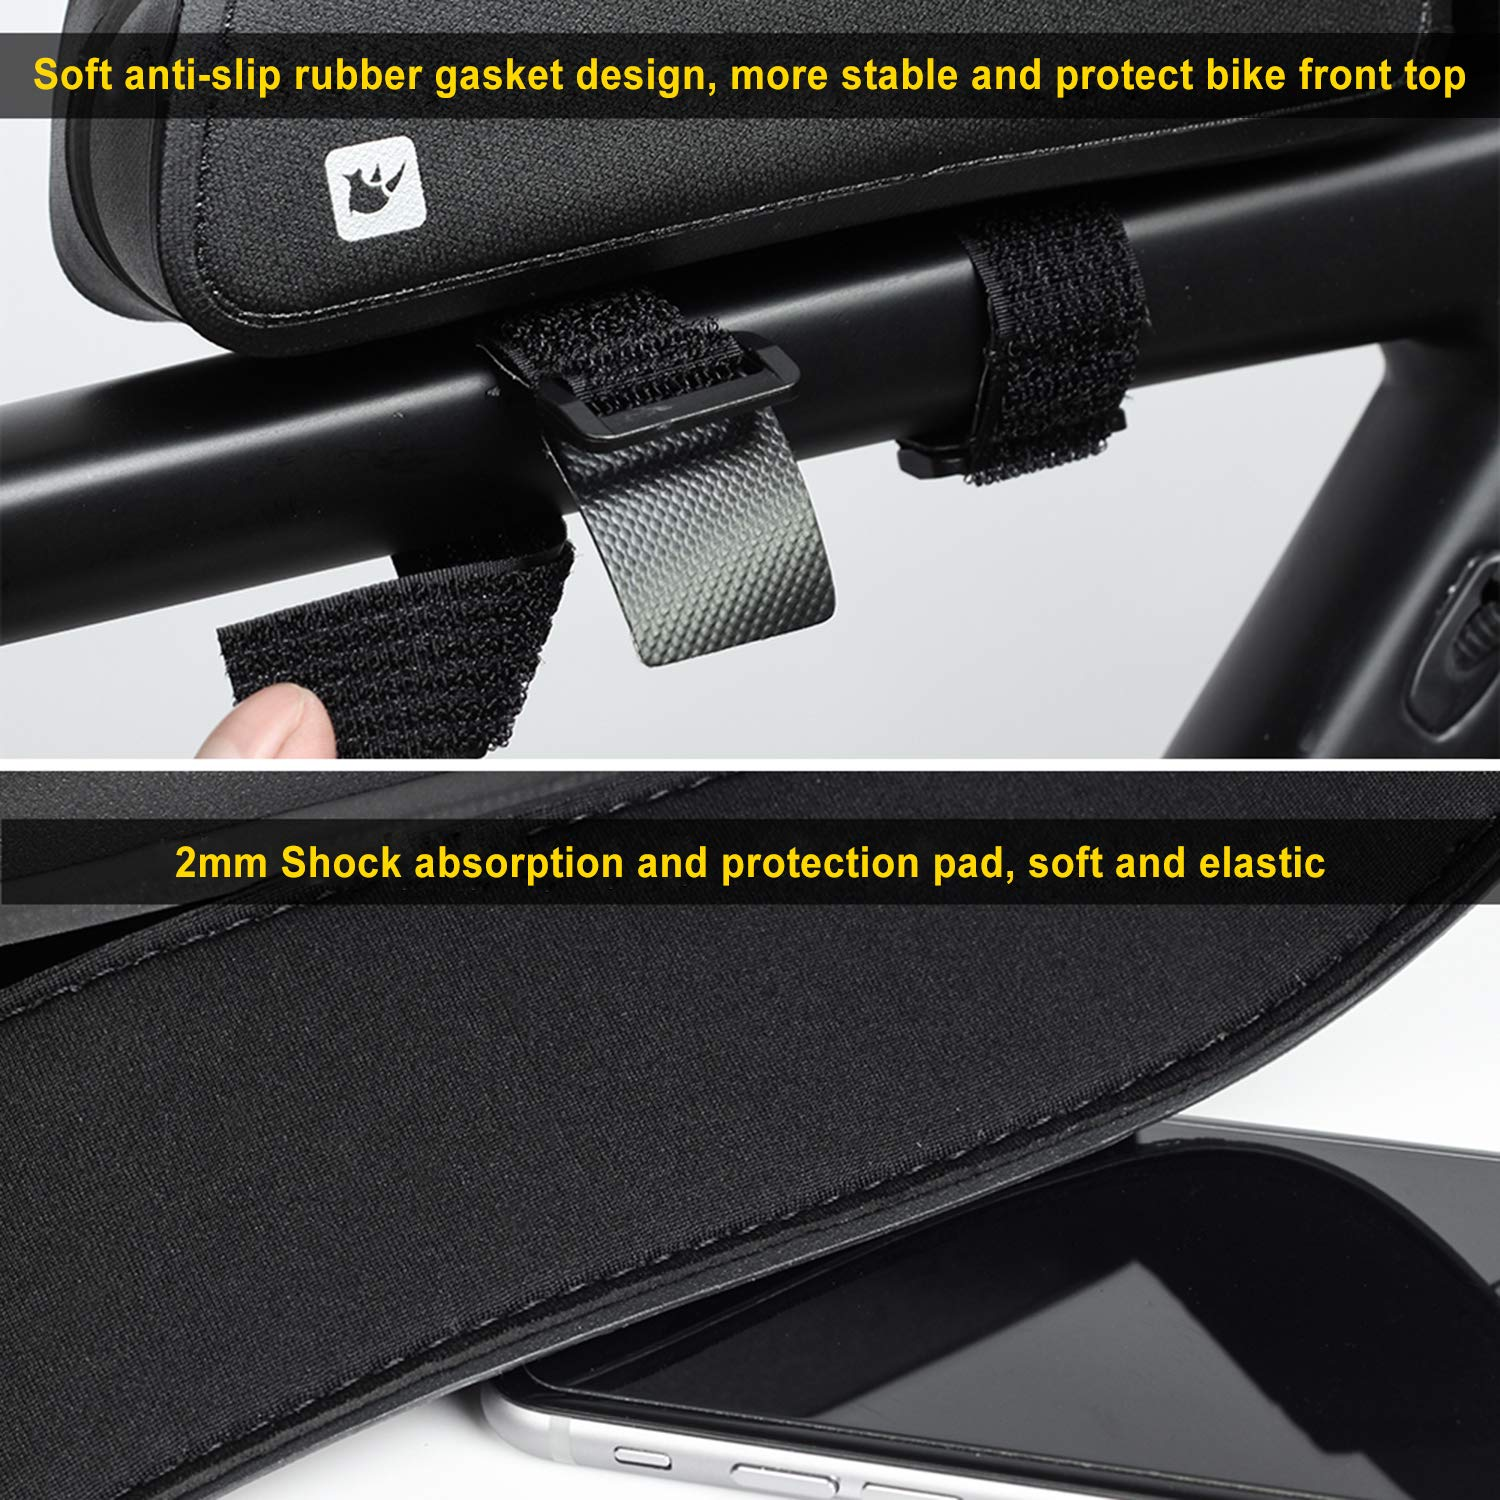 Bike Frame Bag Water Resistance Front Top Tube Bags Bicycle Punch with Shake Reduce Cushions for Professional Cycling Accessories by Sodee (Image #4)